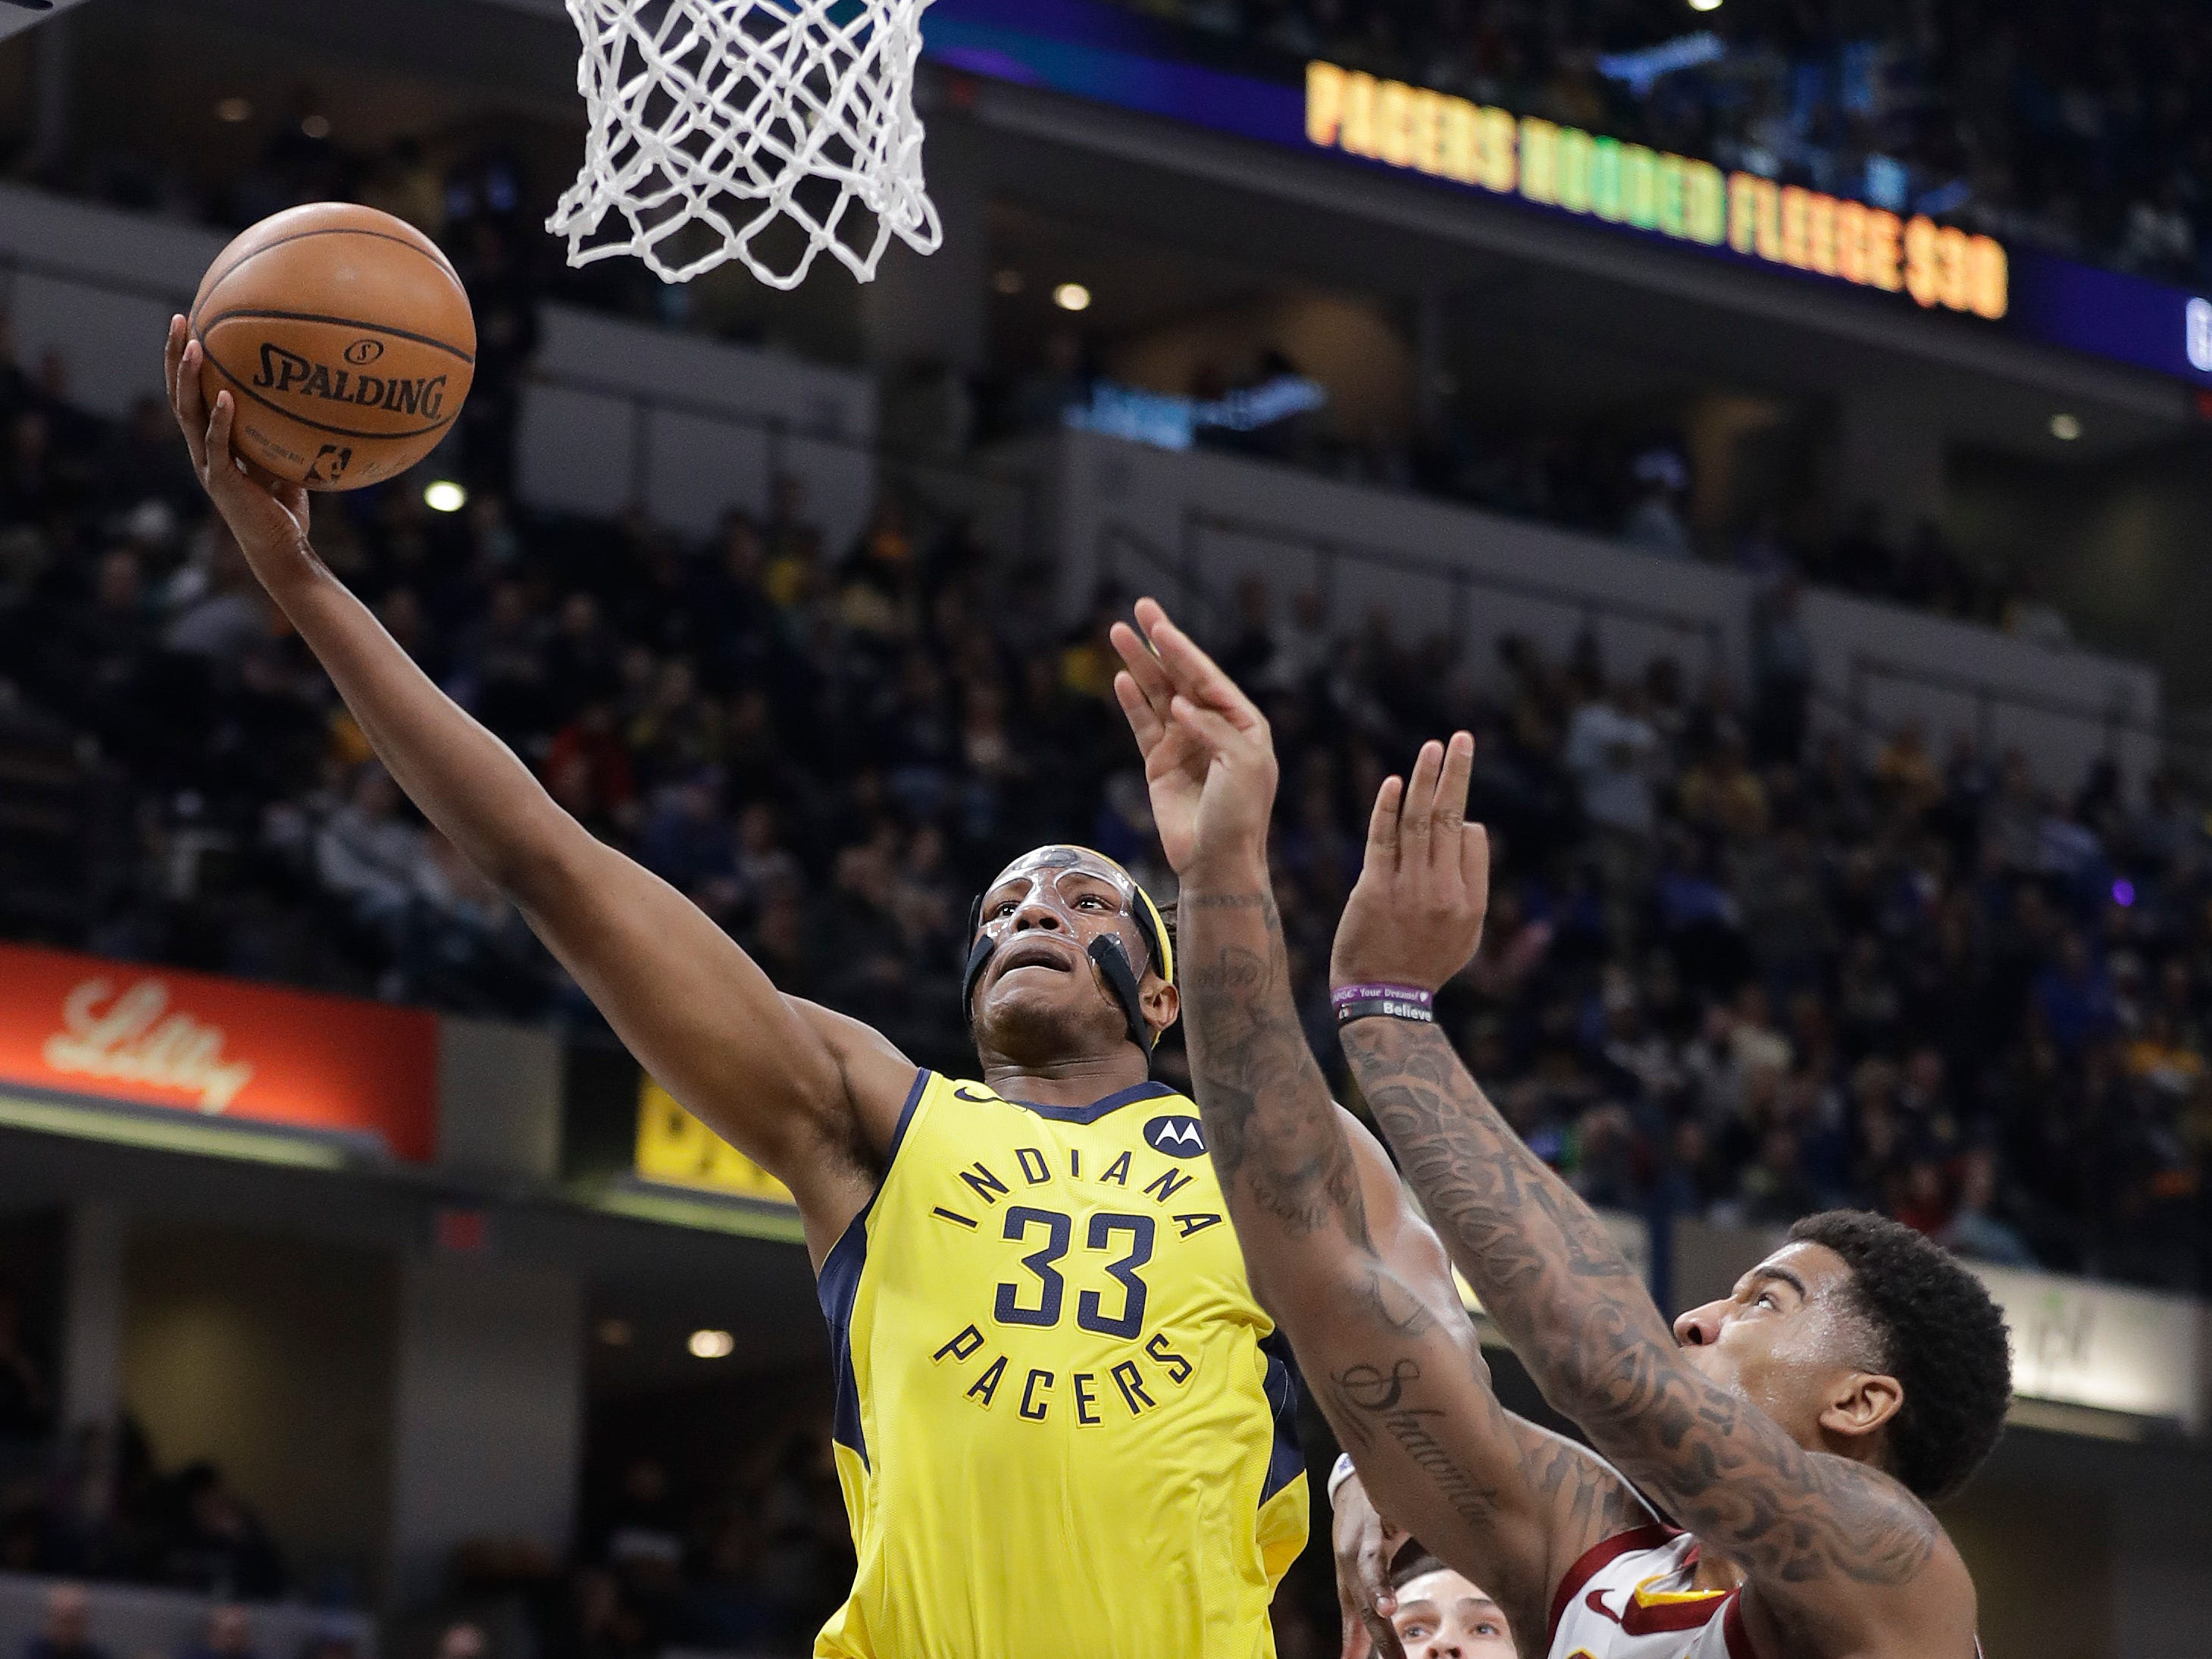 Indiana Pacers' Myles Turner goes up to shoot against Cleveland Cavaliers' Marquese Chriss during the first half.